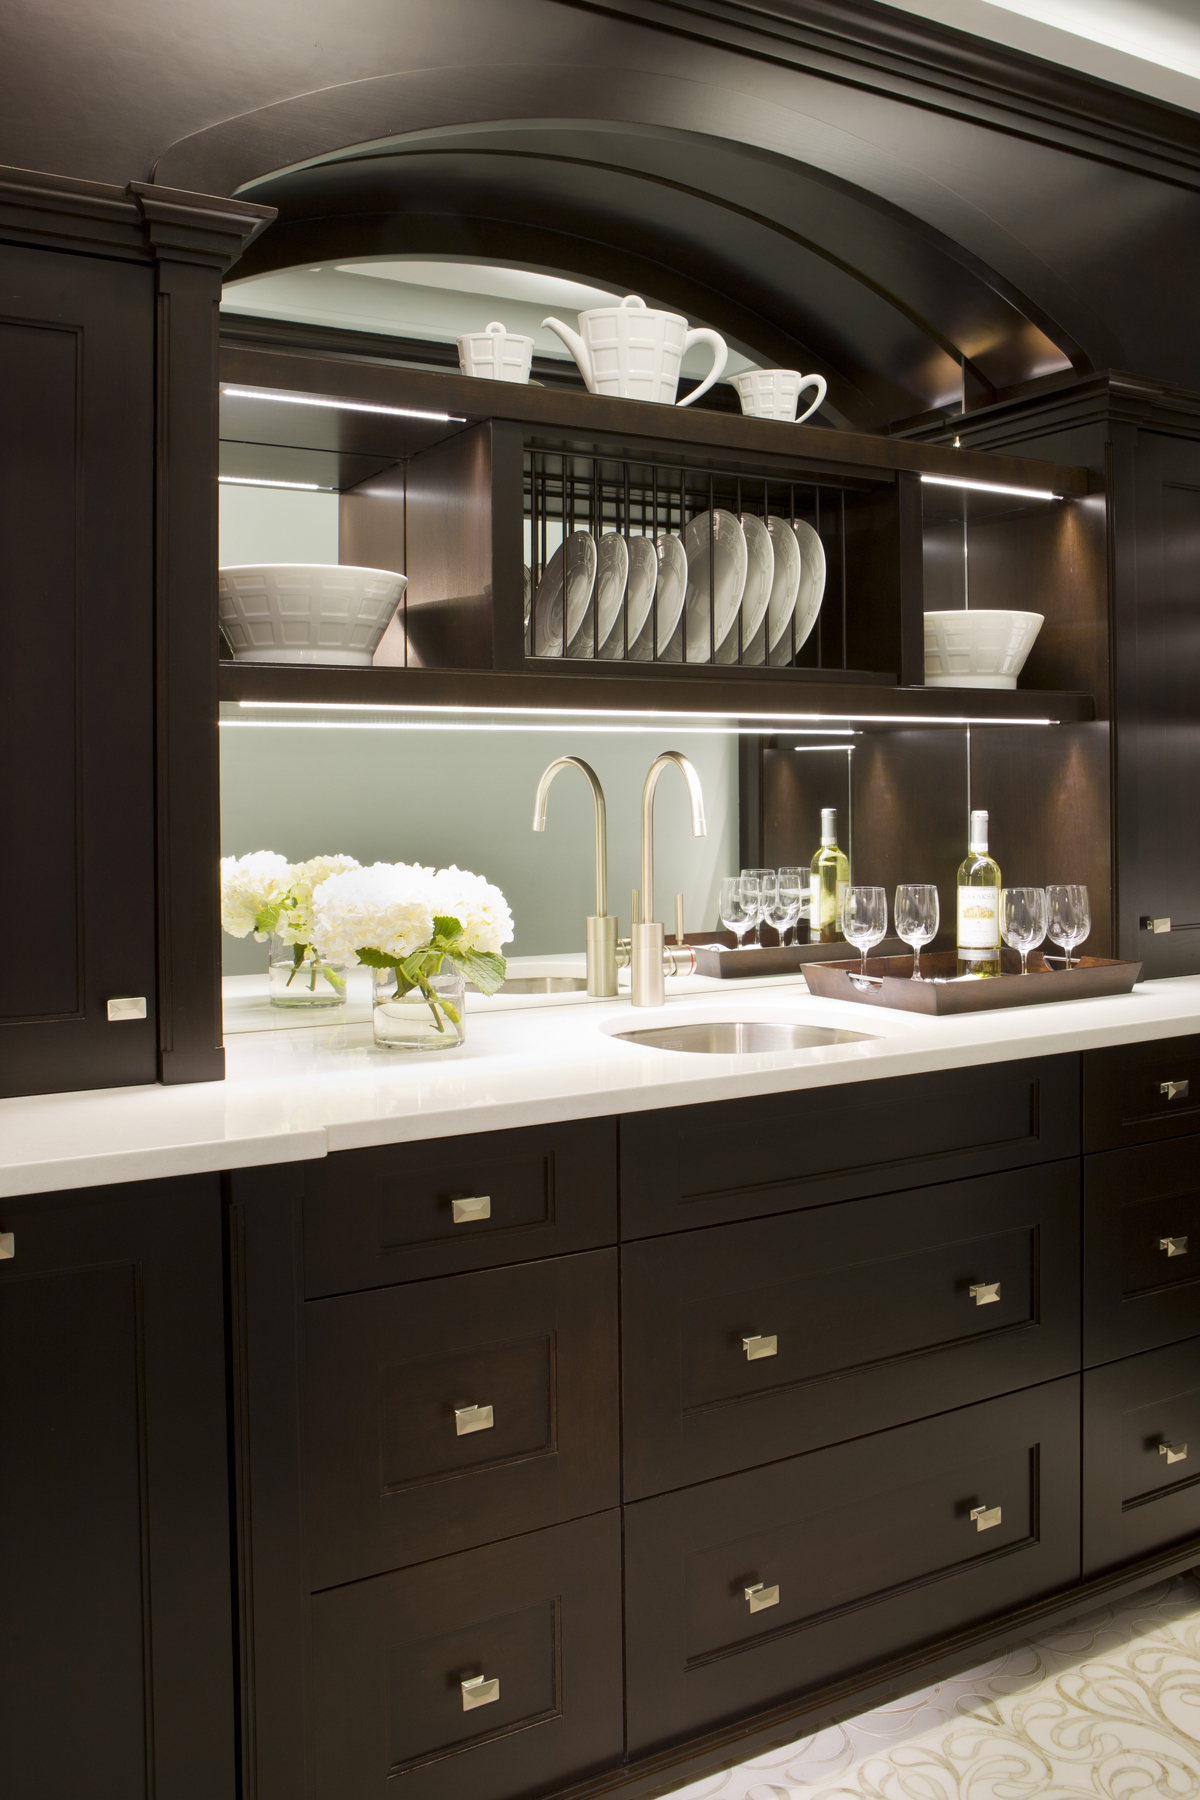 Butleru0027s Pantry Features Shaker Style, Frameless Fully Custom Rutt  Handcrafted Cabinetry In Walnut With A